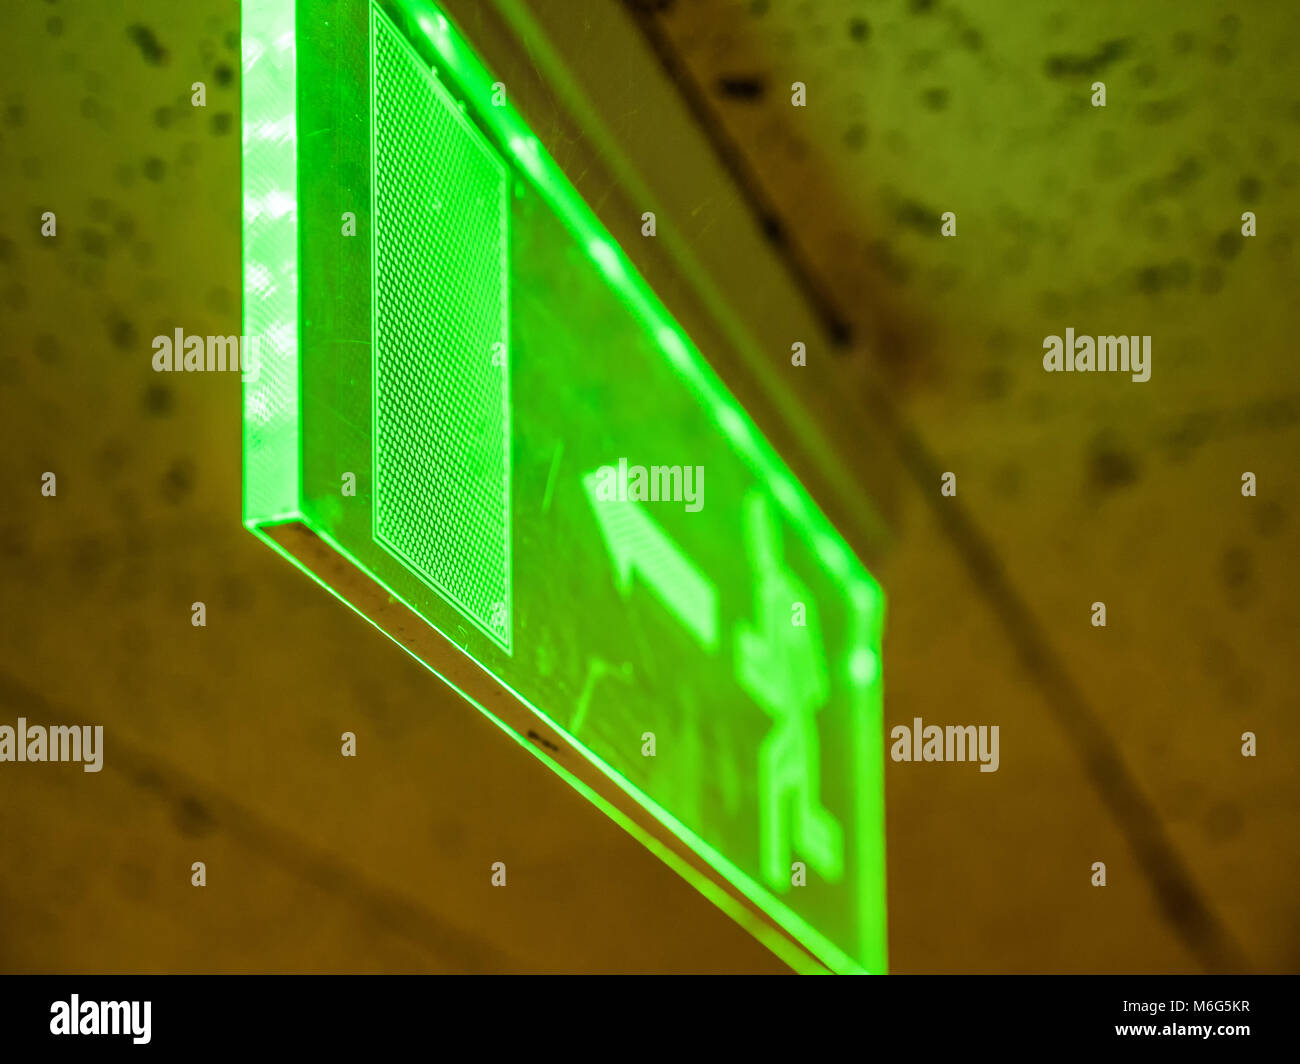 Indoor view green emergency fire exit sign on ceiling. - Stock Image